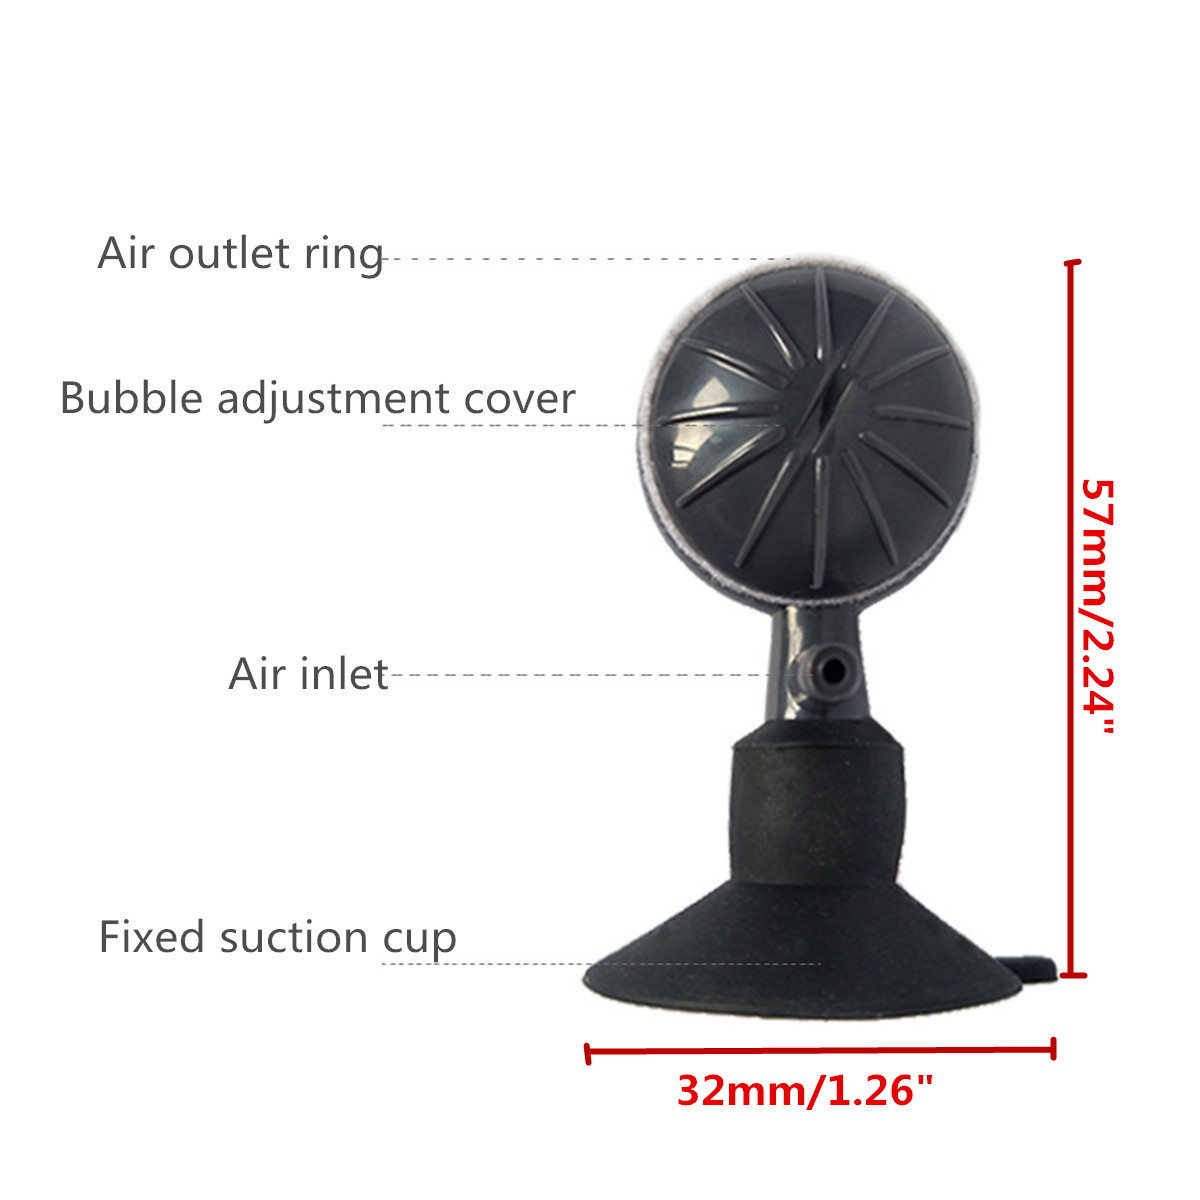 Adjustable Small Bubble Air Stone Diffuser Oxygen Aeration Pump Aquarium Fish Tank Suction Cup